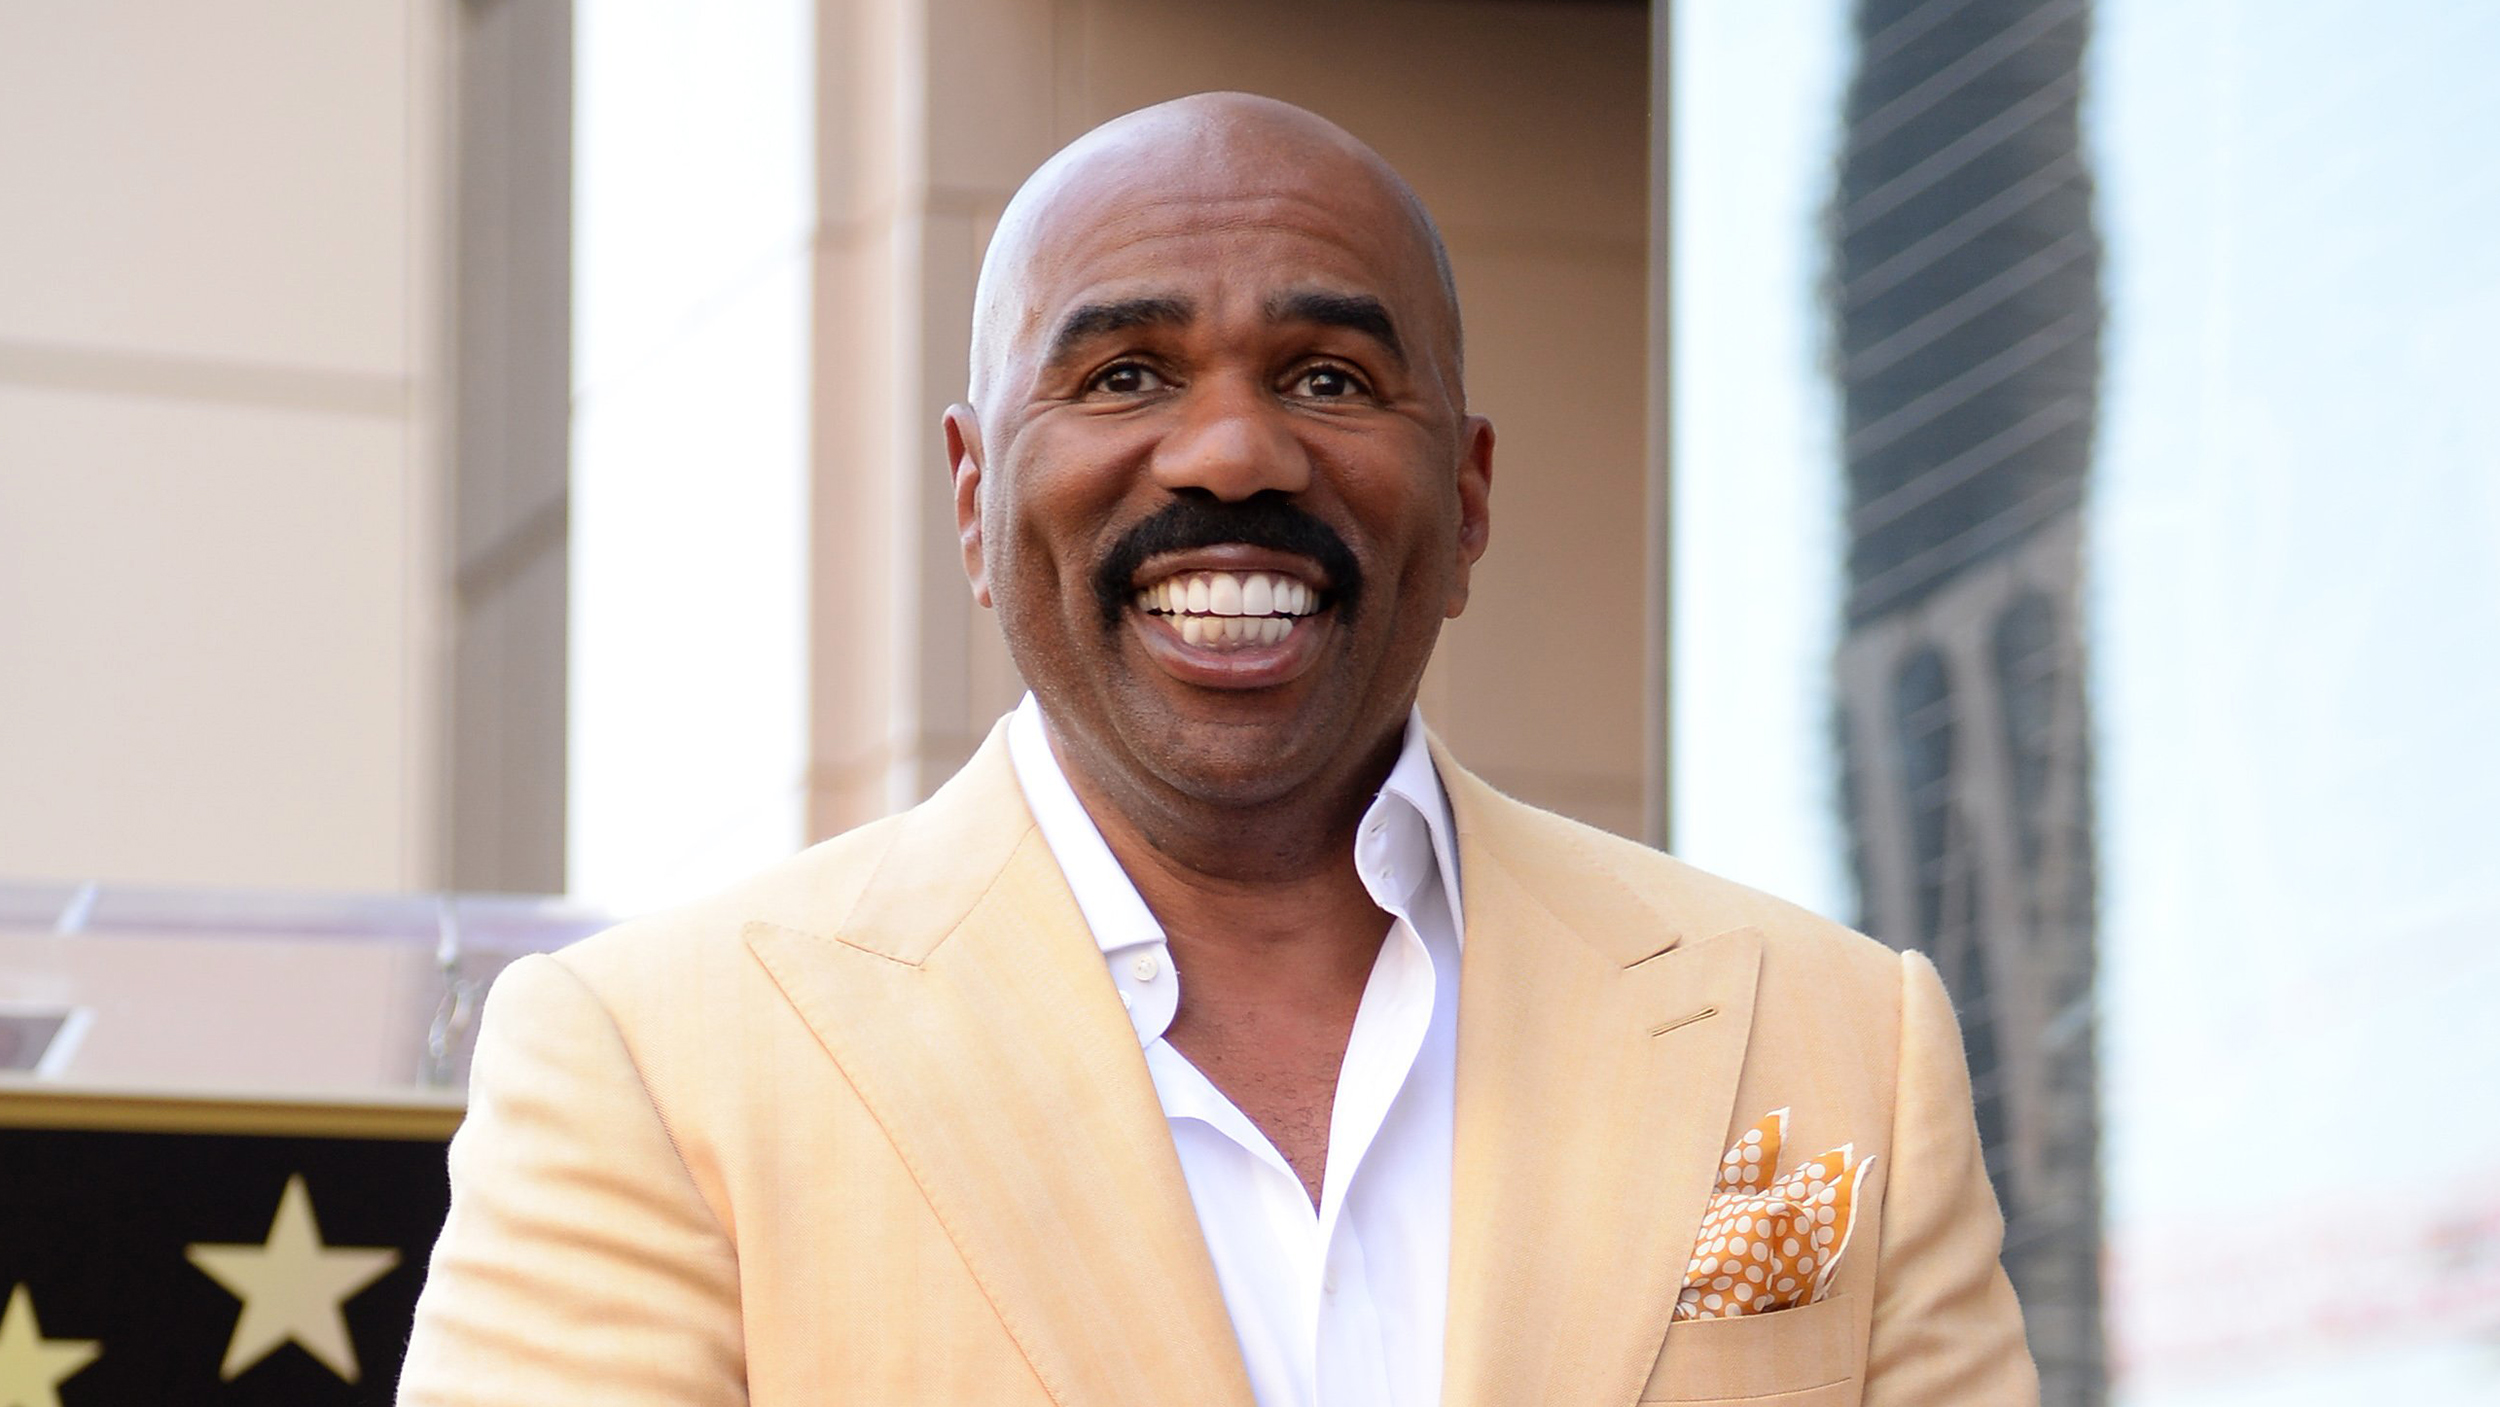 Today S Family Fuse Steve Harvey Weighs In On How To Handle Family Issues Today Com